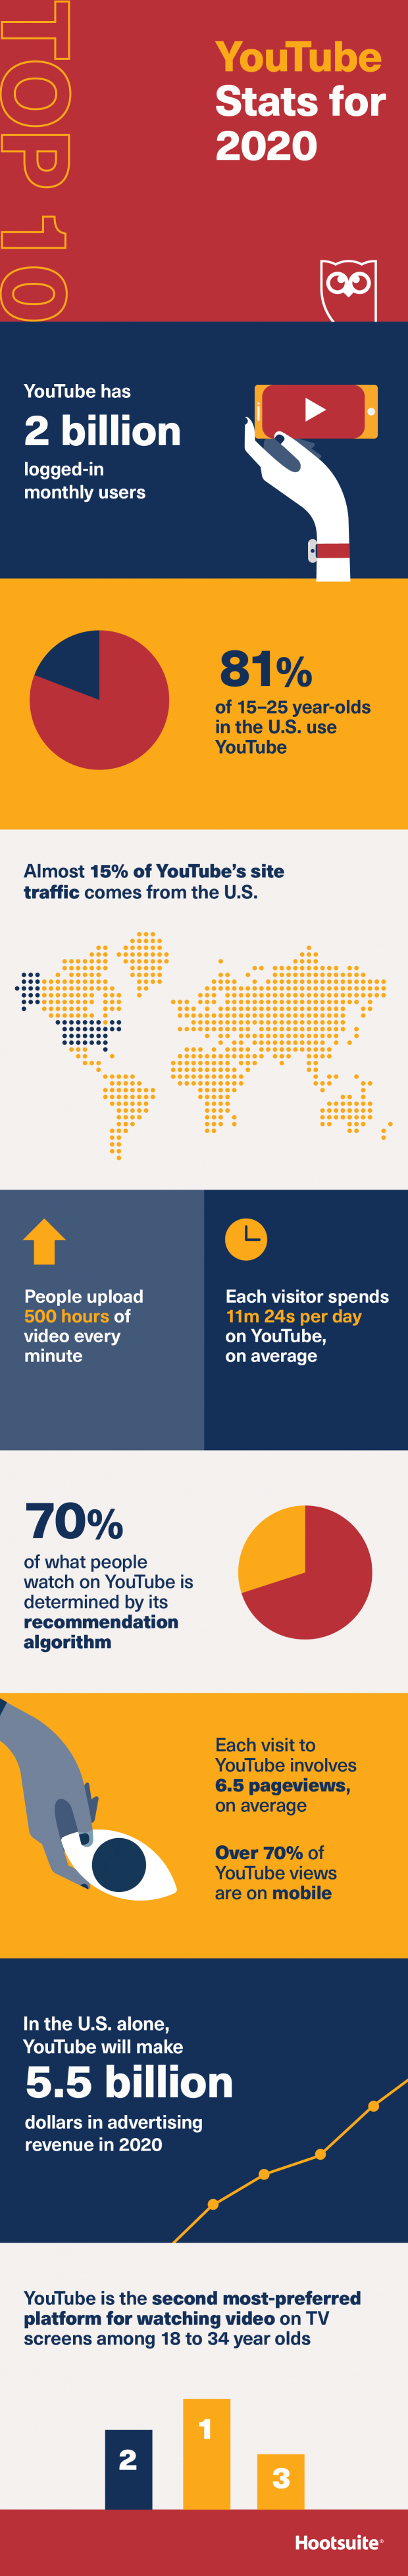 Top 10 YouTube statistics for 2020